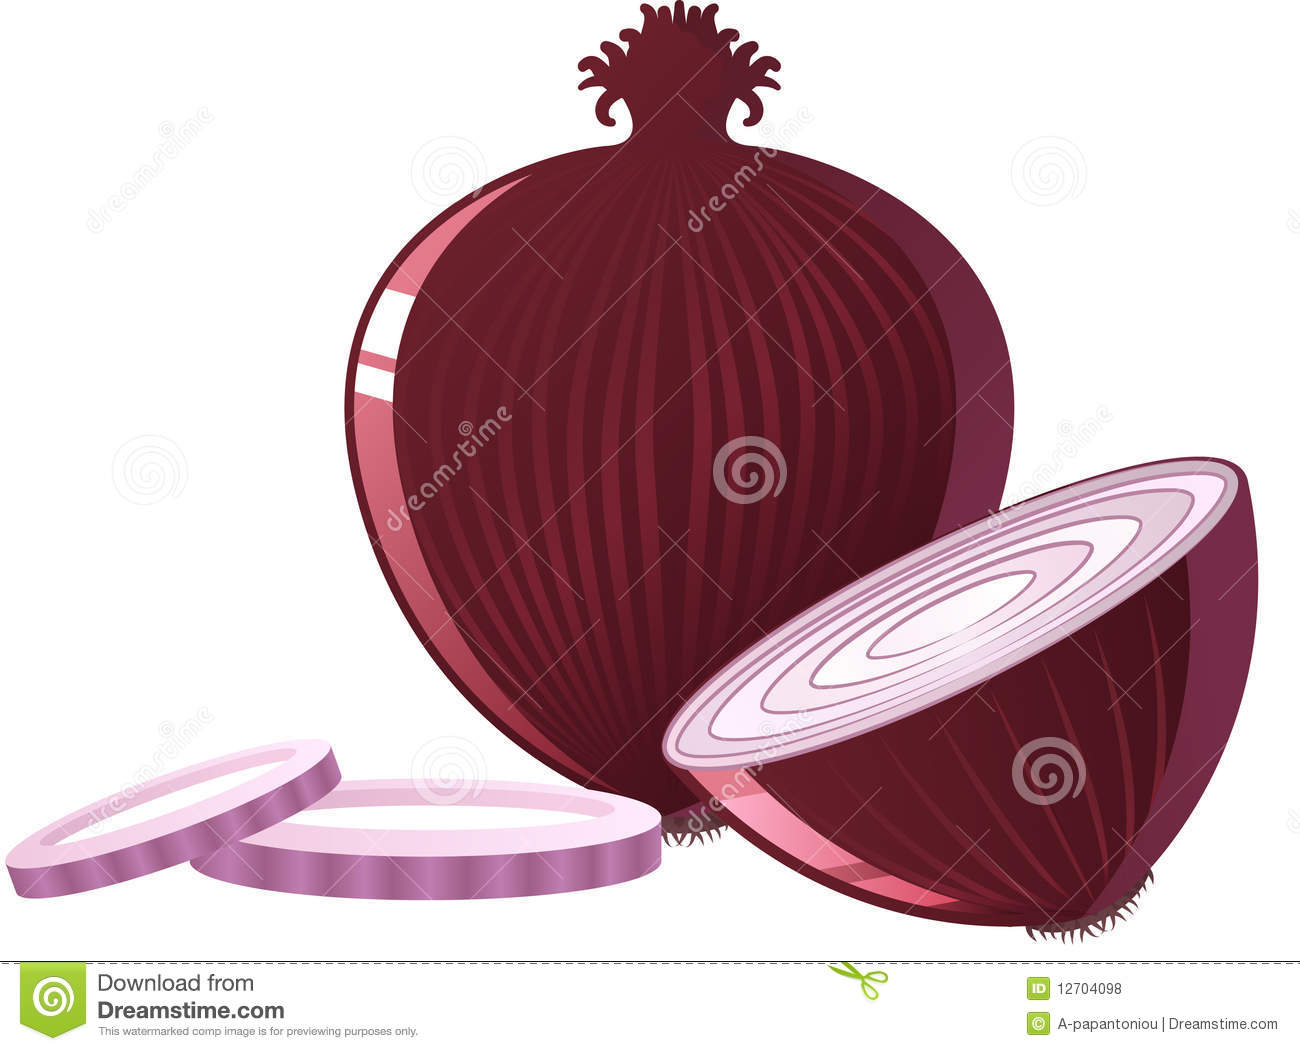 Red Onion Royalty Free Stock Photos - Image: 12704098